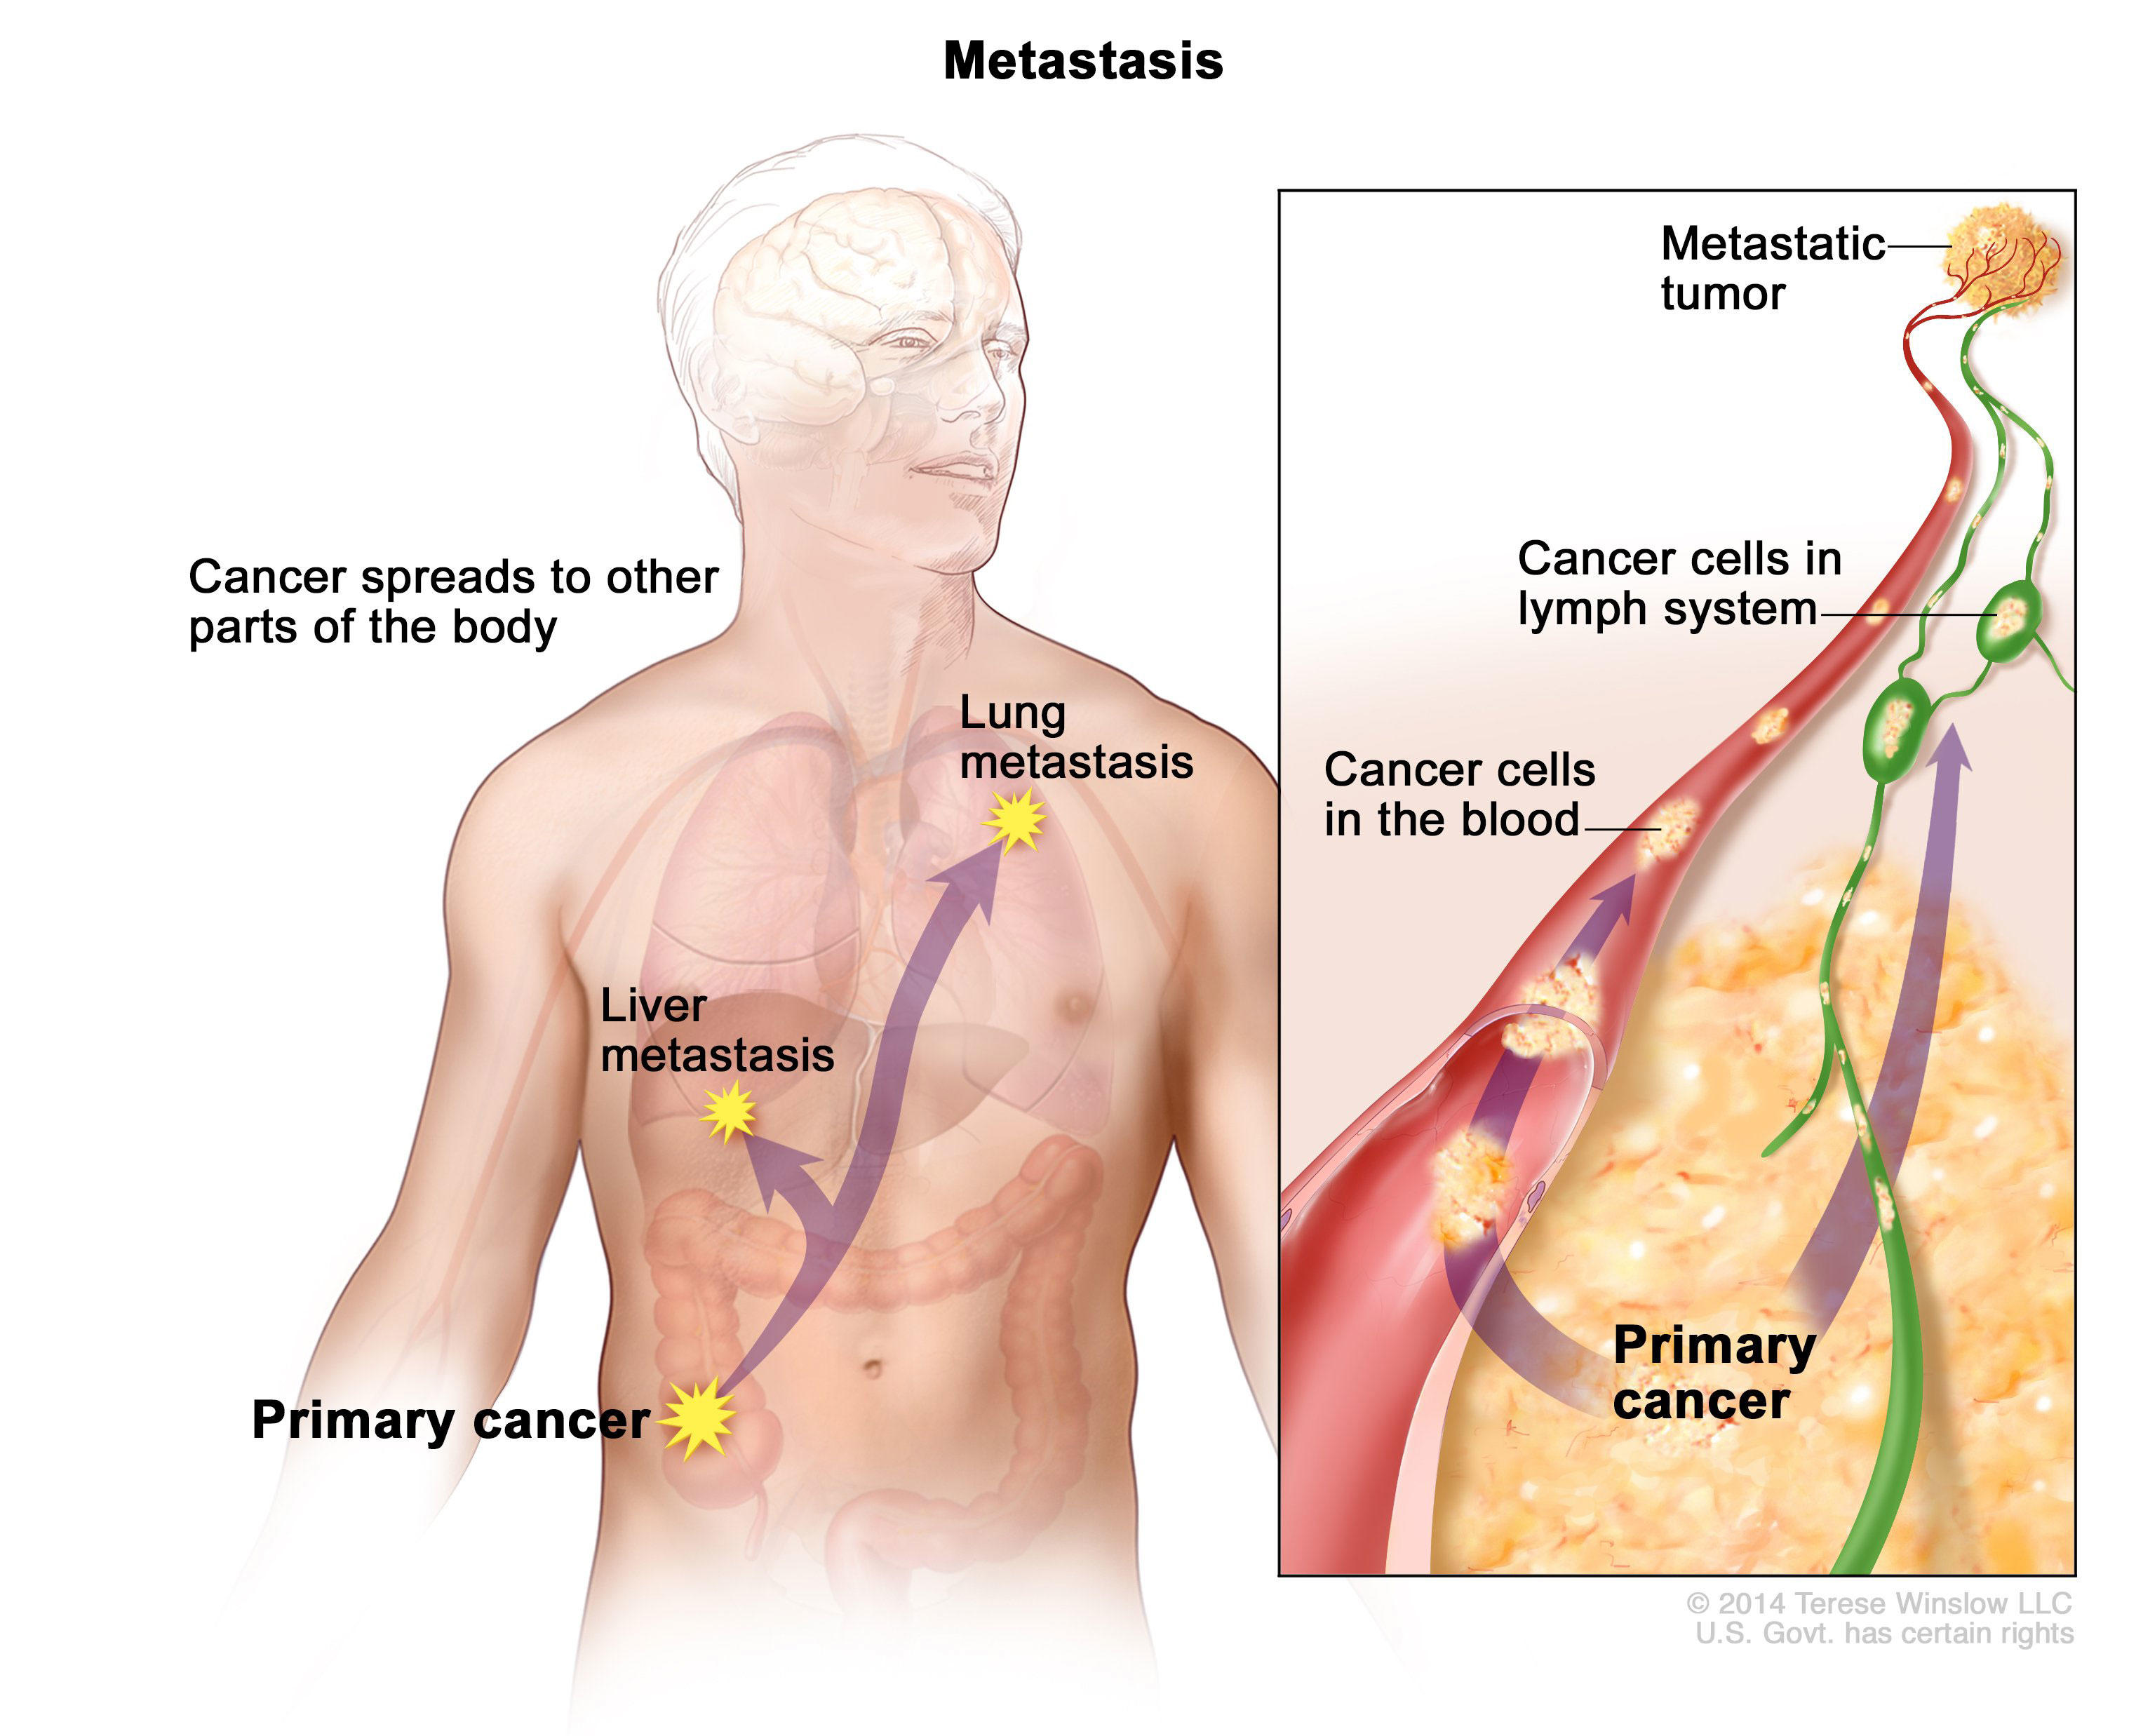 LONG-TERM SURVIVAL IN HER2-POSITIVE BREAST CANCER WITH BRAIN METASTASES. CASE REPORT